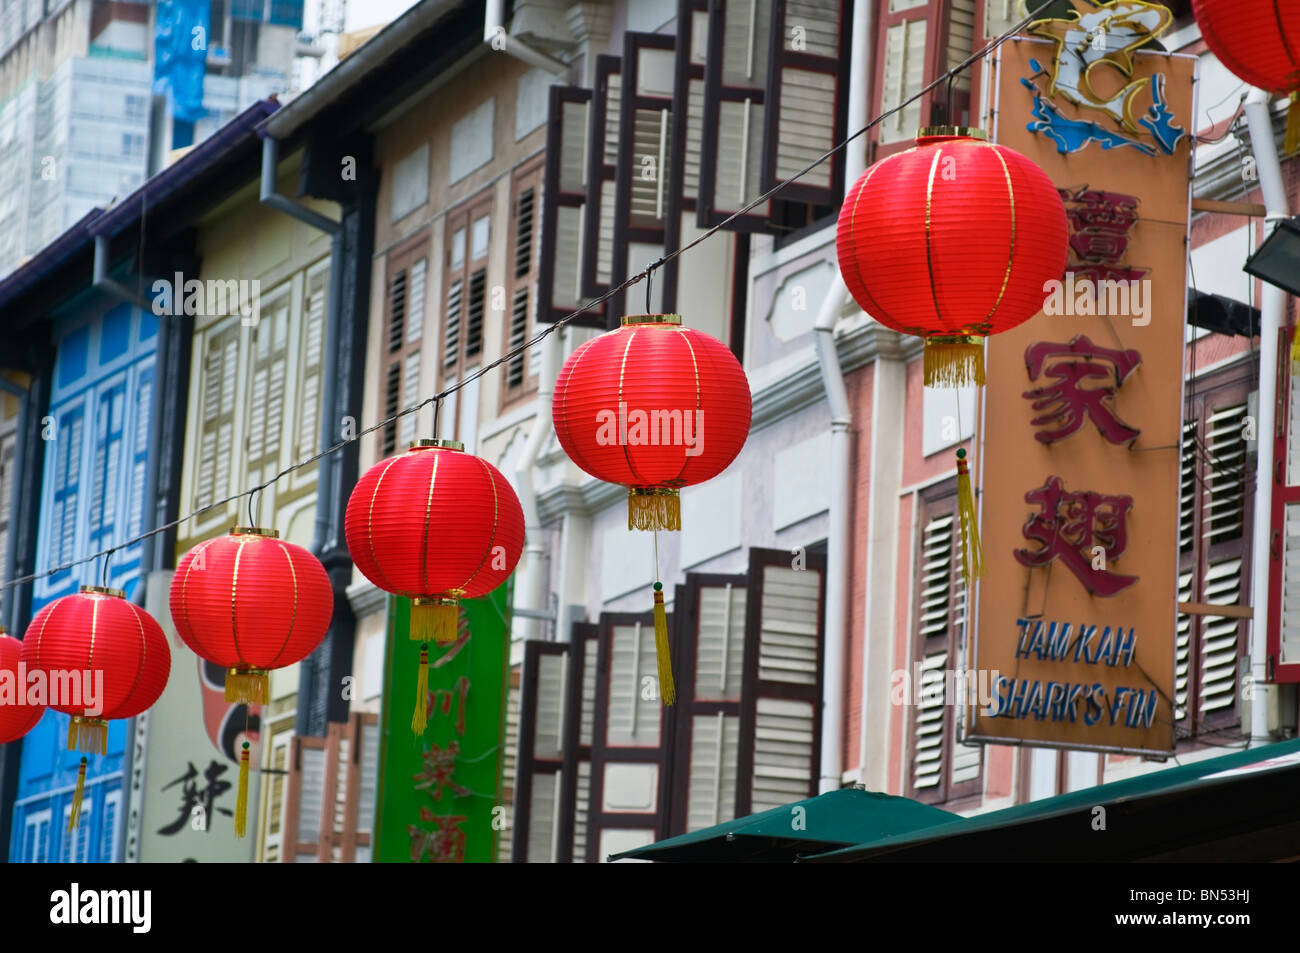 Red lanterns and traditional shophouses Chinatown Singapore - Stock Image